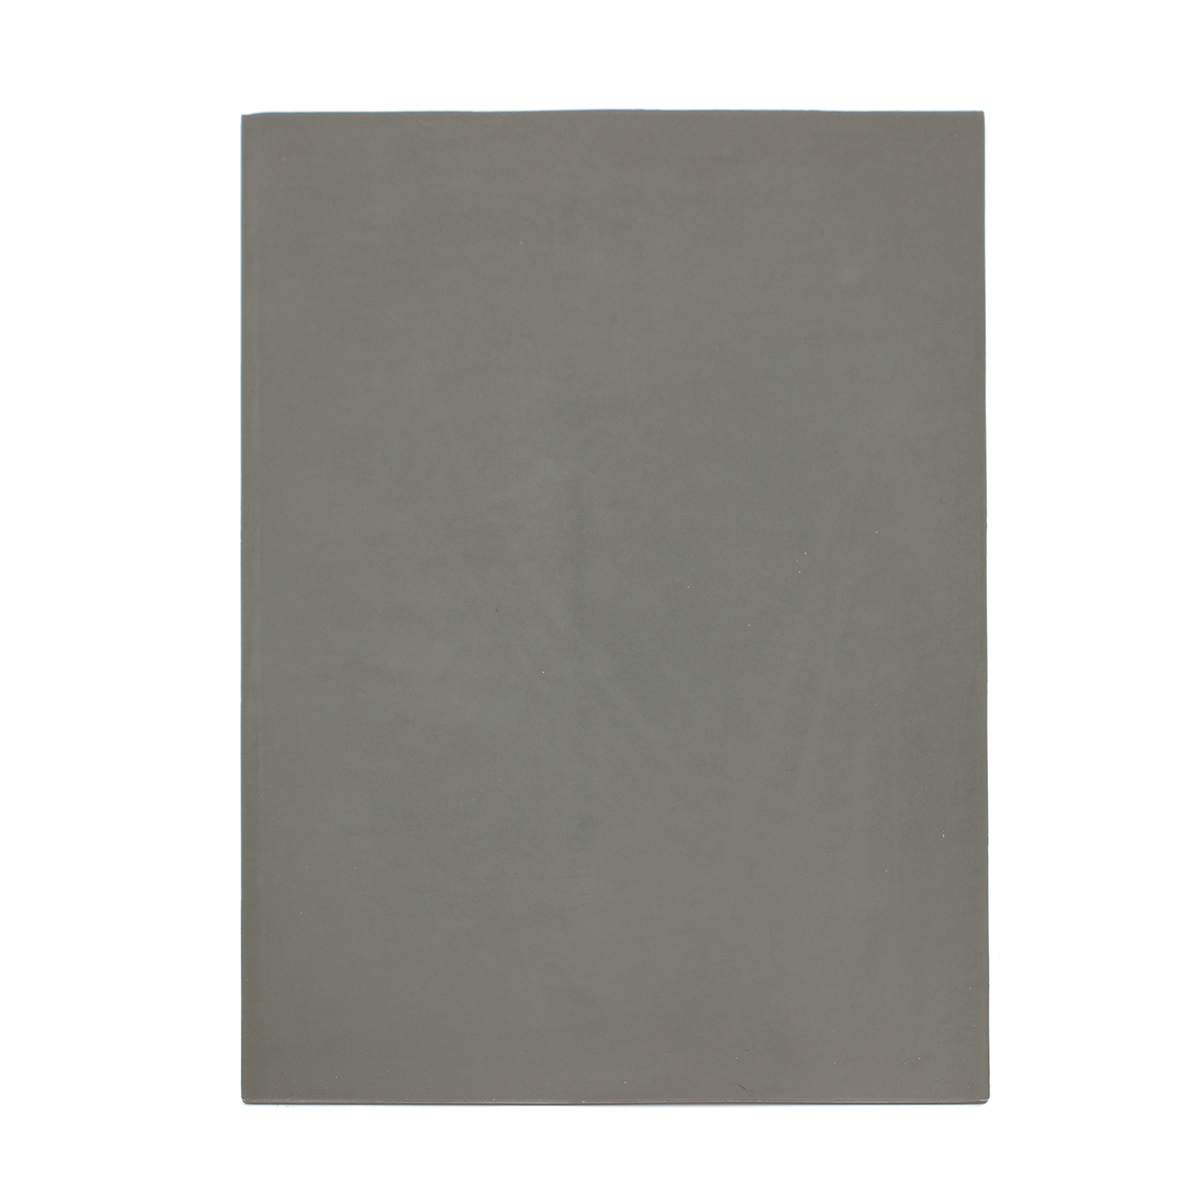 A4 Laser Rubber Sheet 2.3mm Gray for Printing Engraving Sealer Stamp DIY Craft